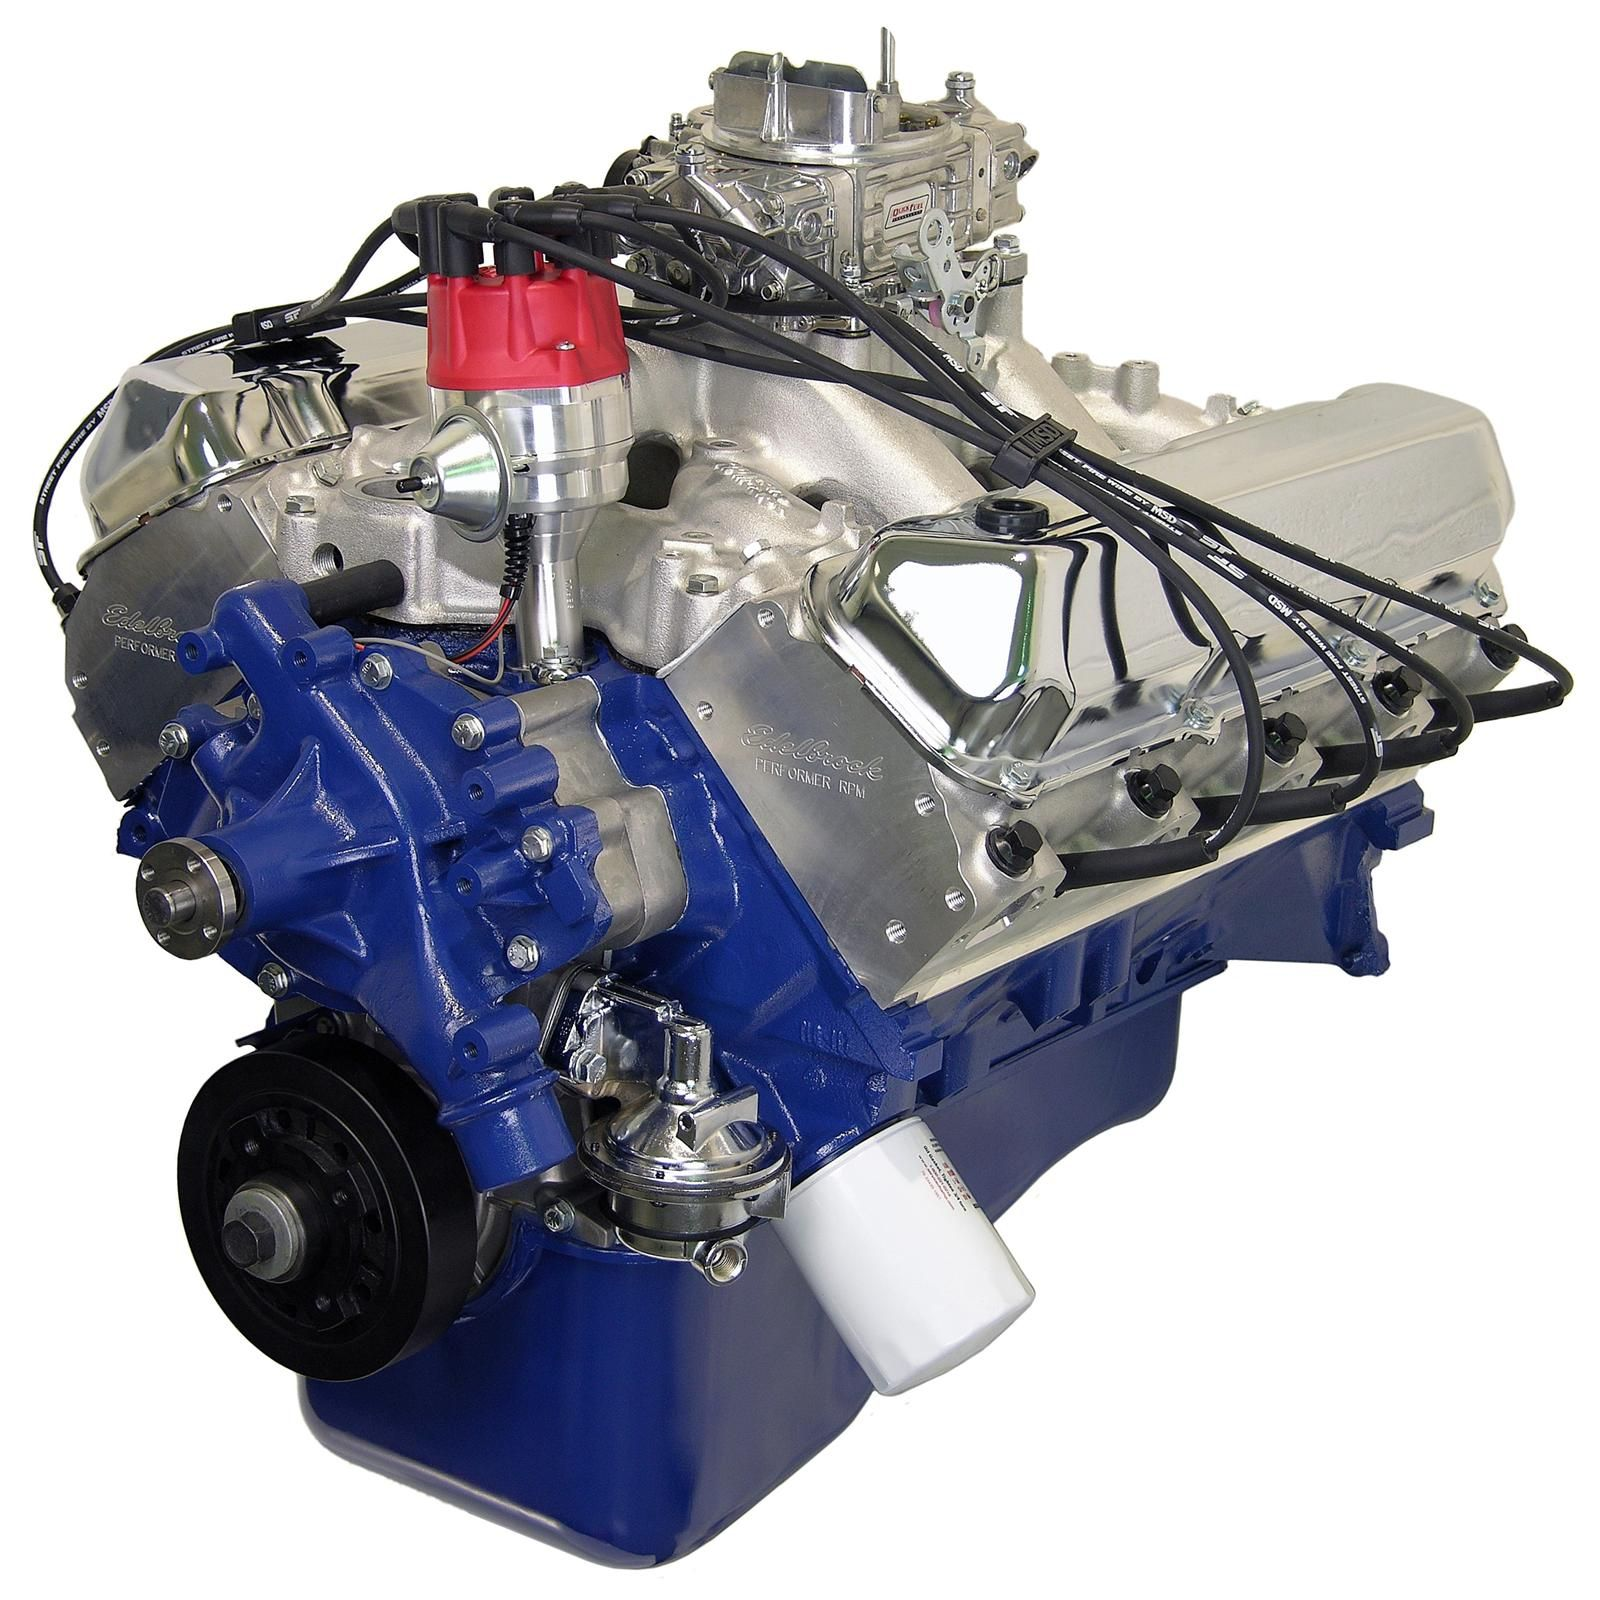 ATK High Performance Ford 460 525 HP Stage 1 Long Block